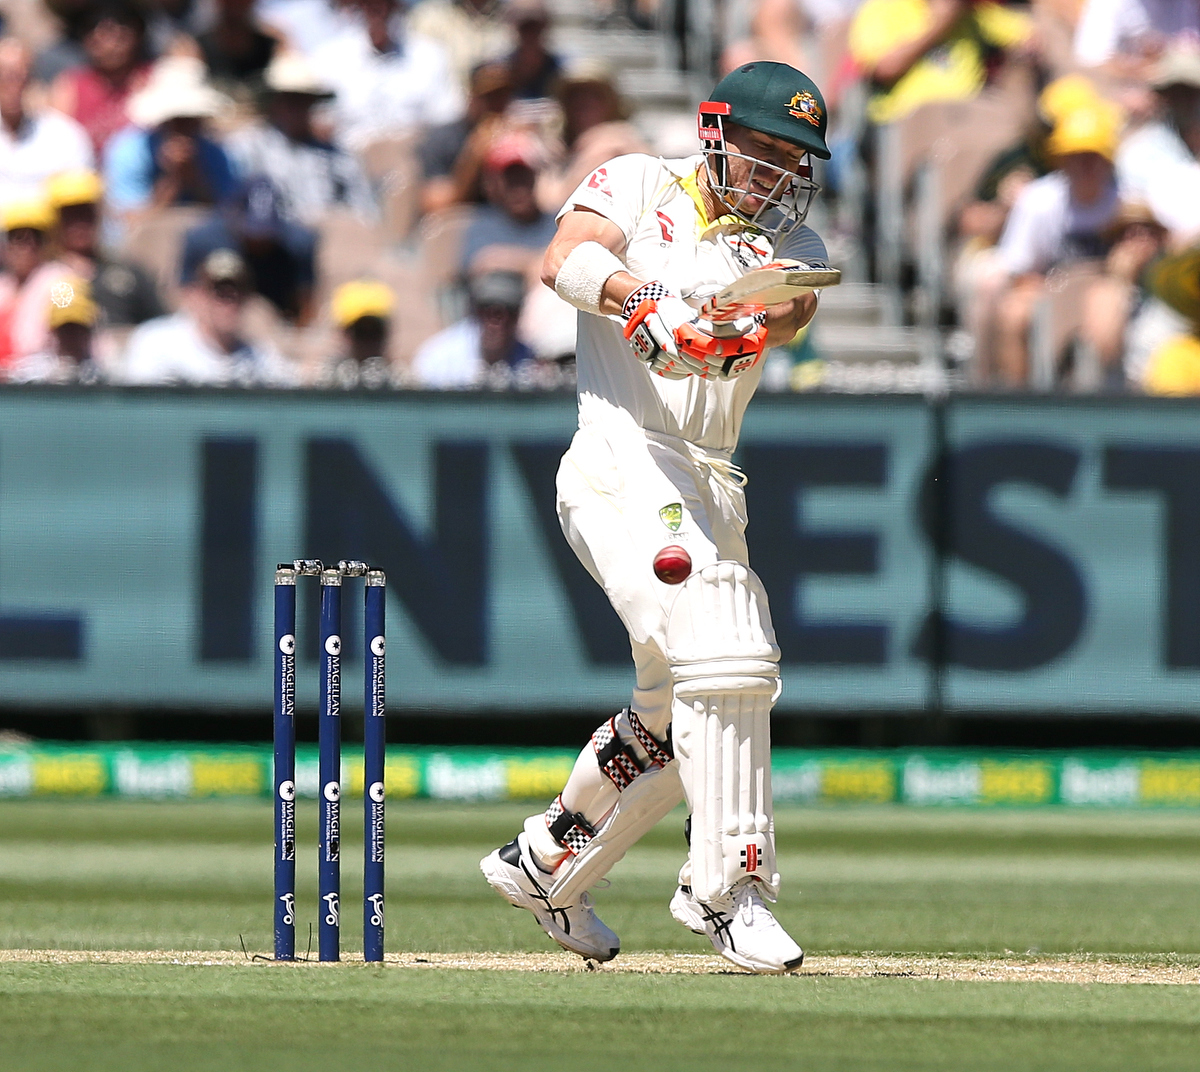 David Warner pulls Chris Woakes to bring up his fifty runs at the MCG